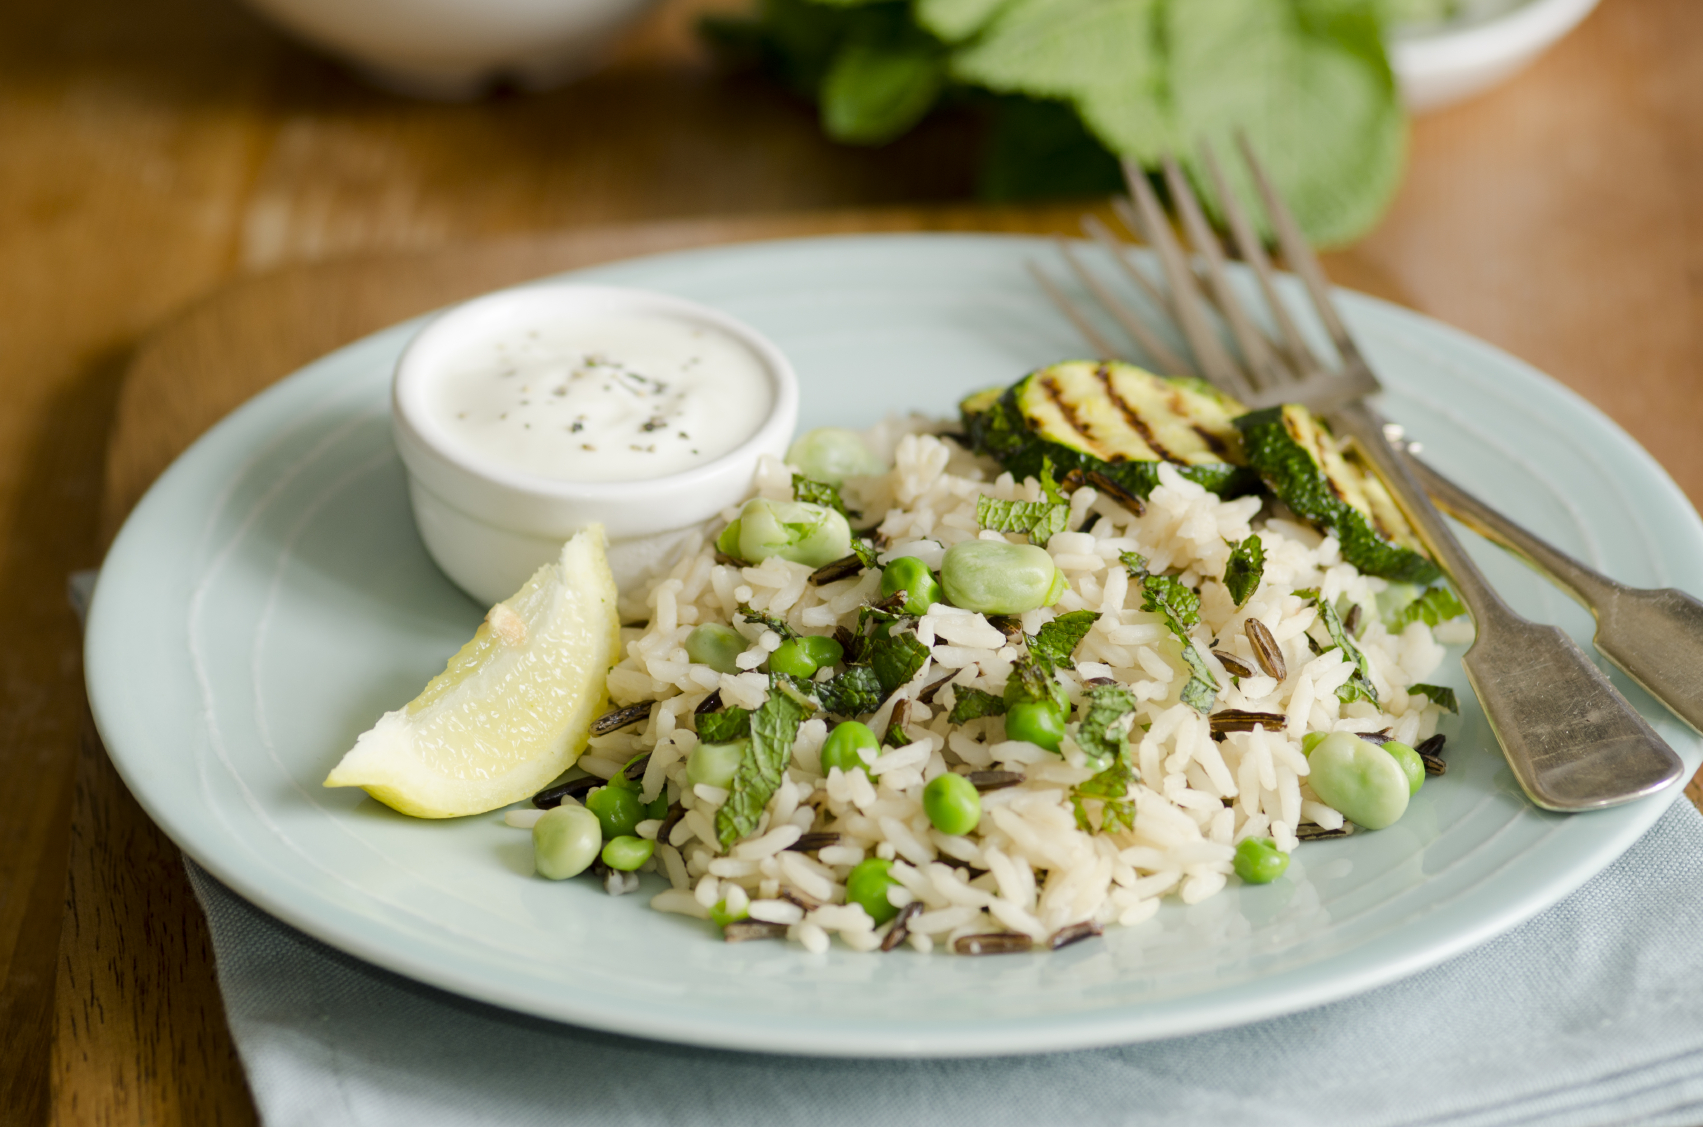 Rice with lemon and broad beans : Ross bil-lumi u l-ful